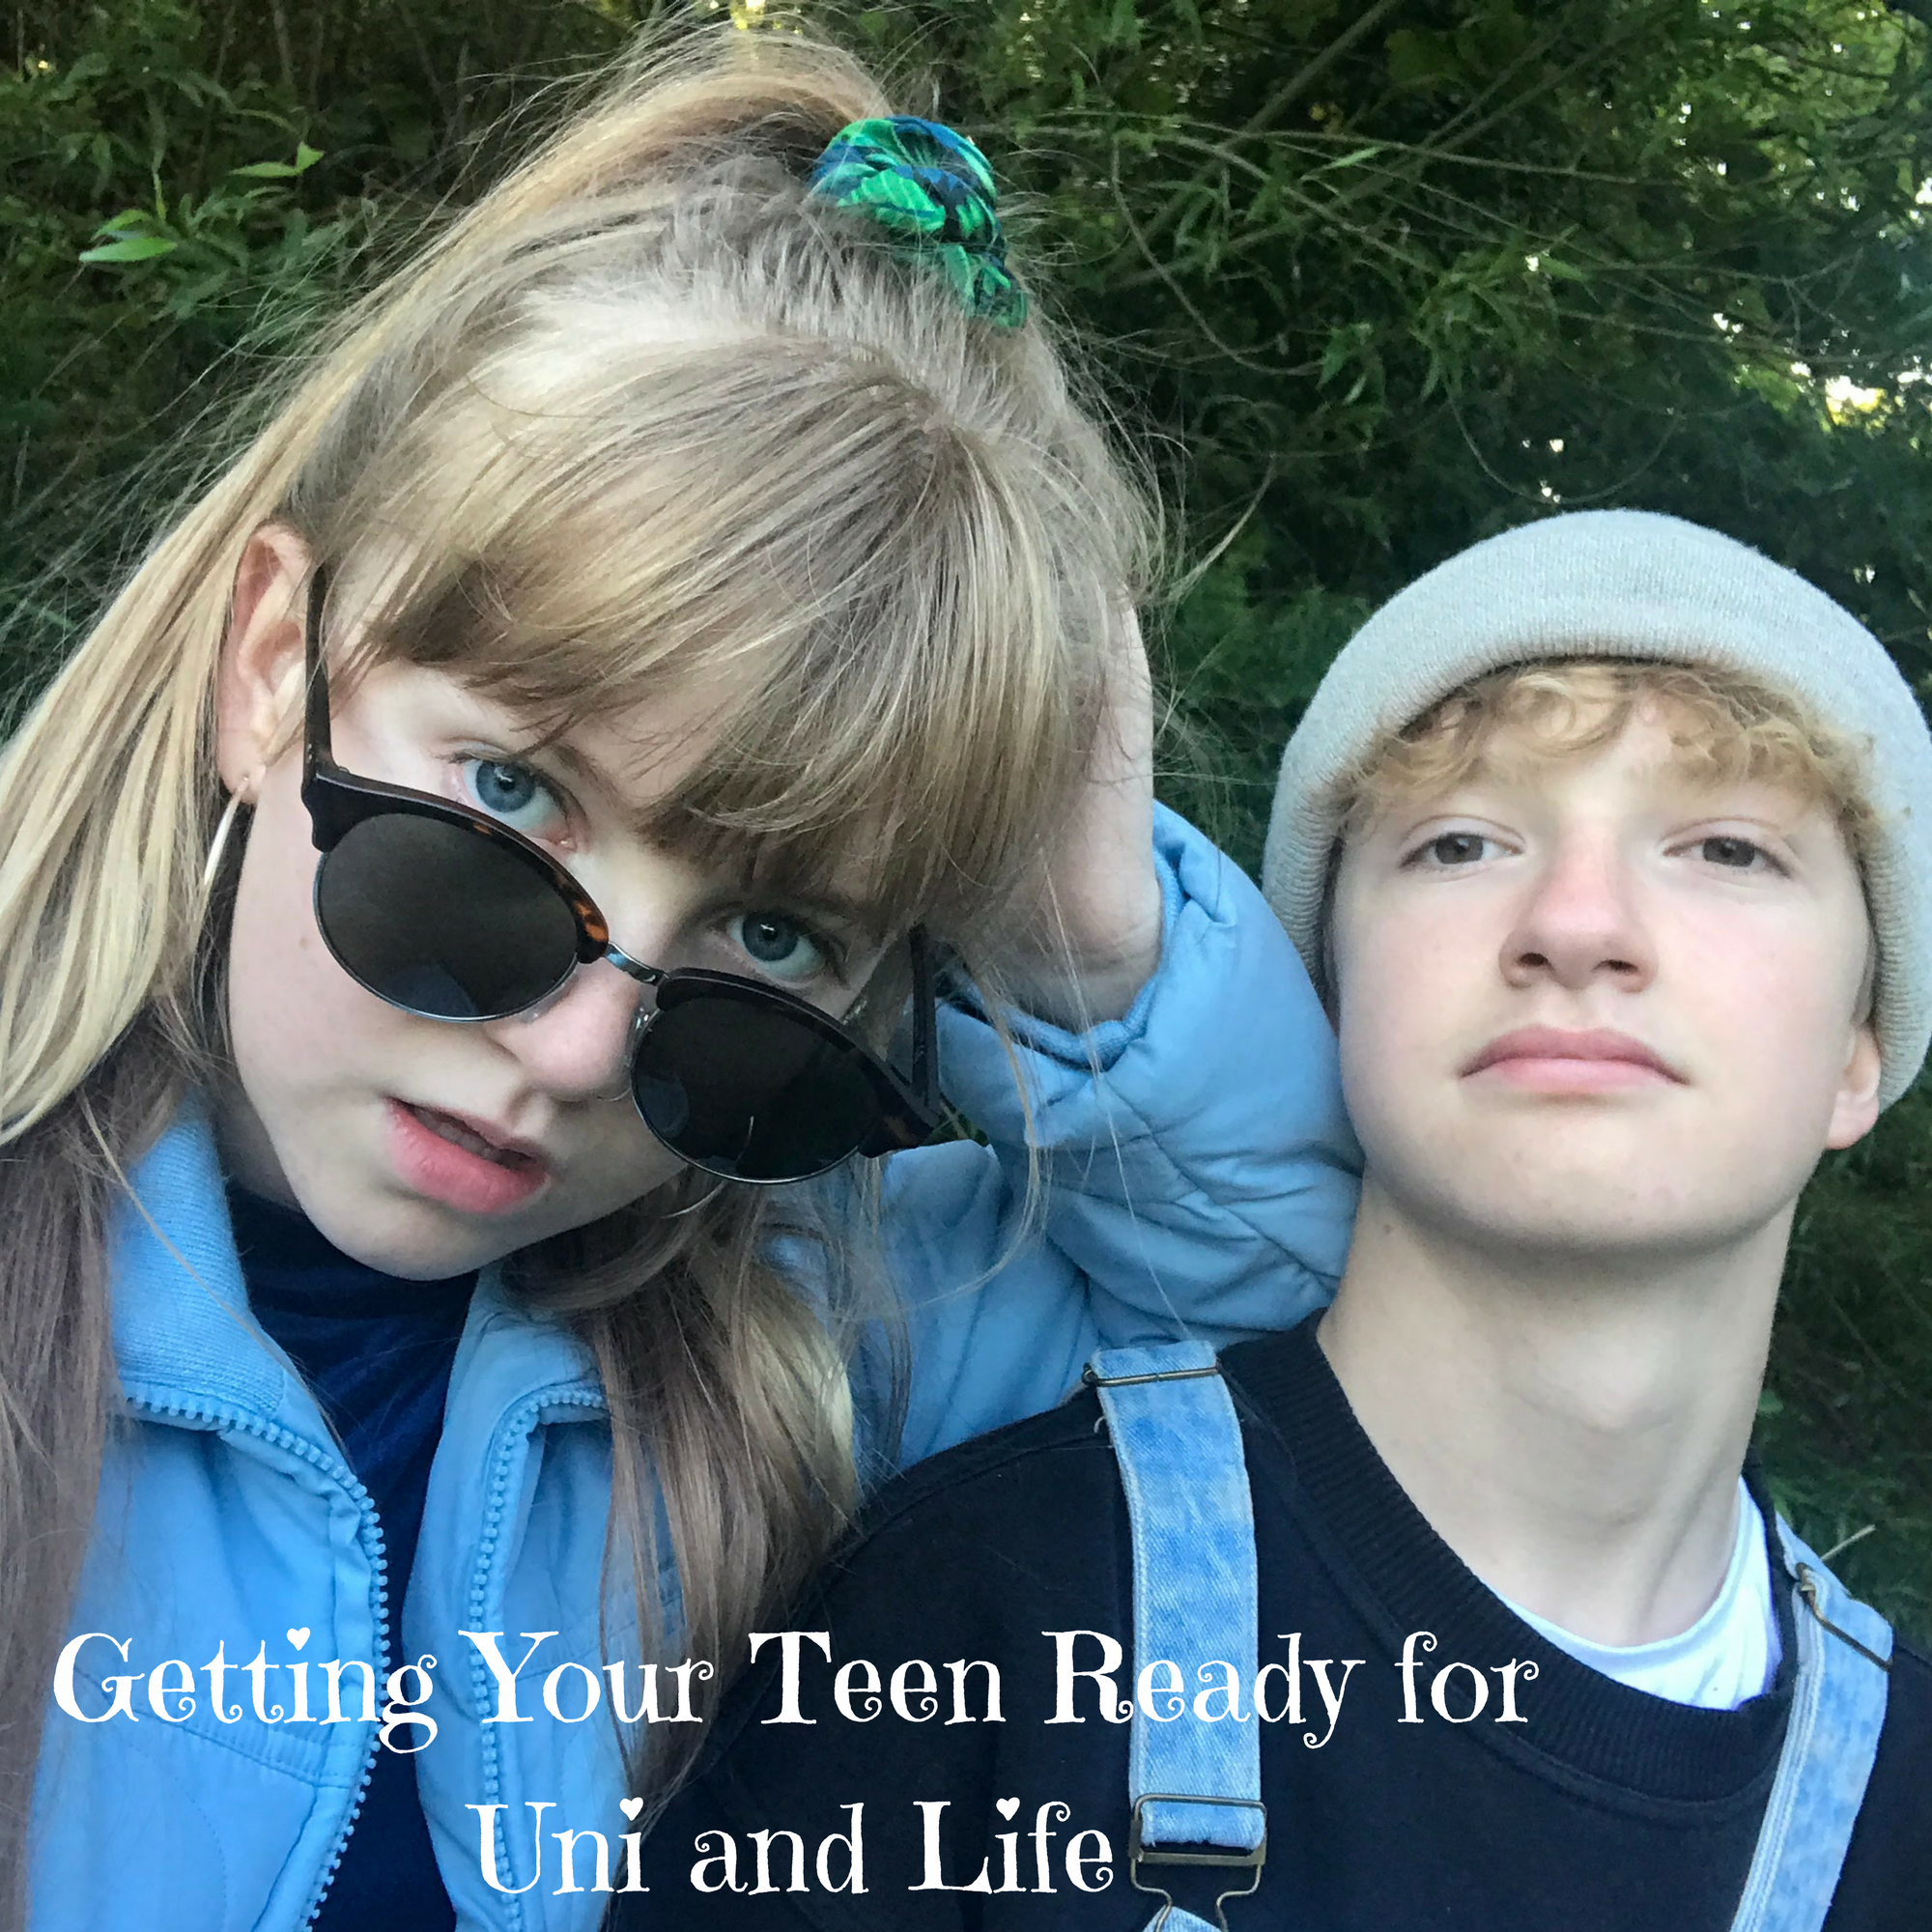 Getting Your Teen Ready for Uni and Life